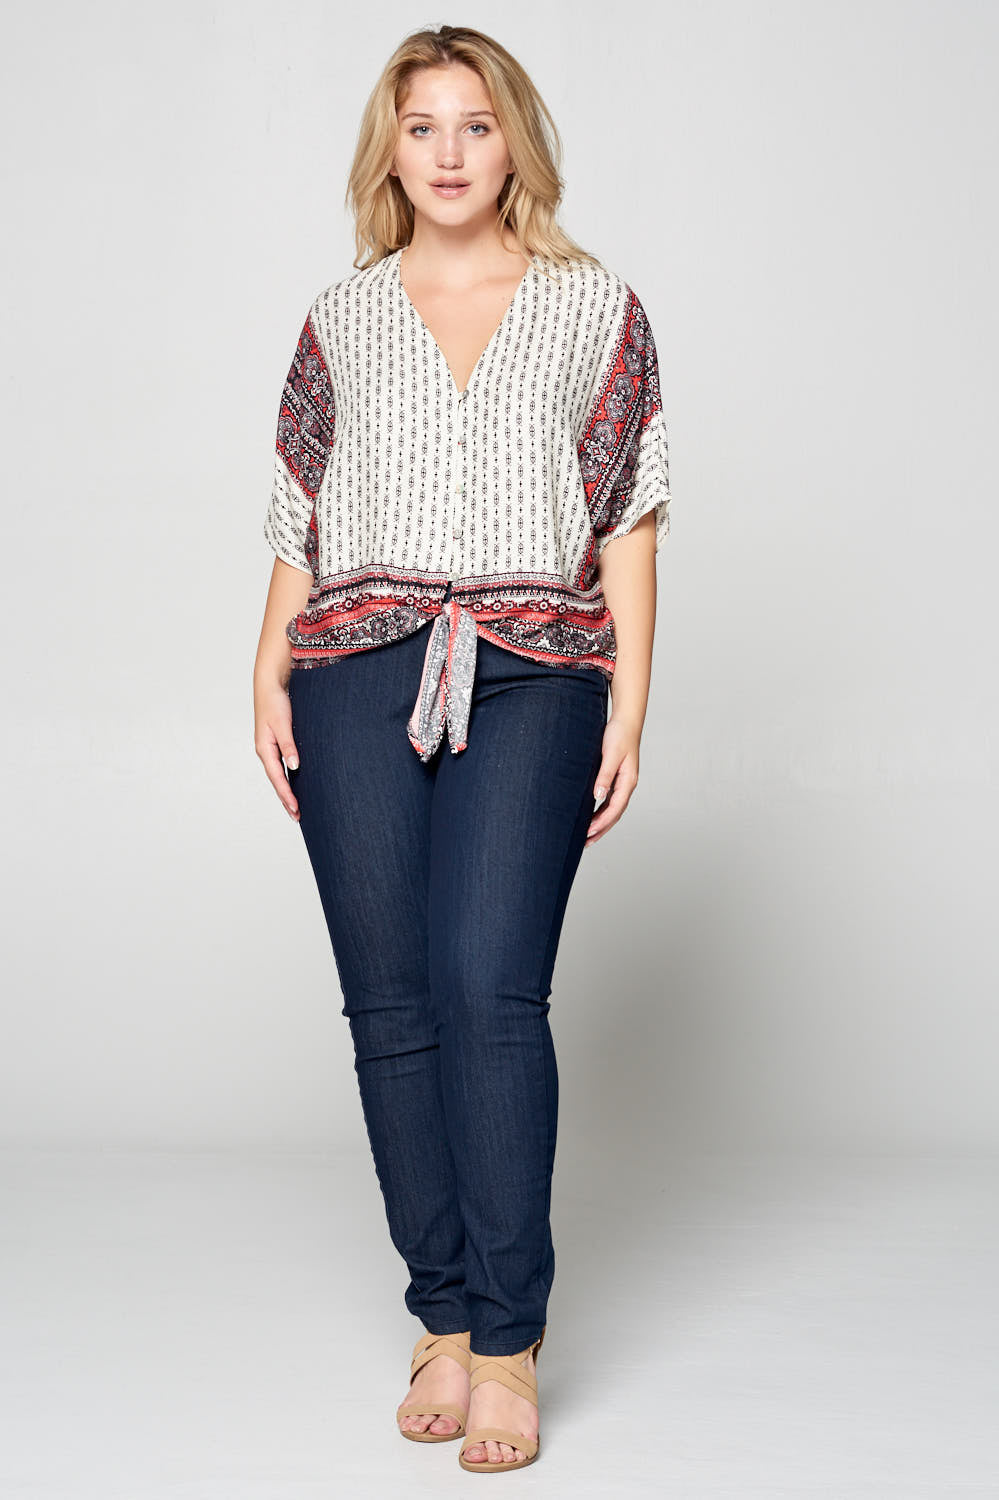 PRINT FRONT TIE BUTTON UP TOP - PLUS SIZE